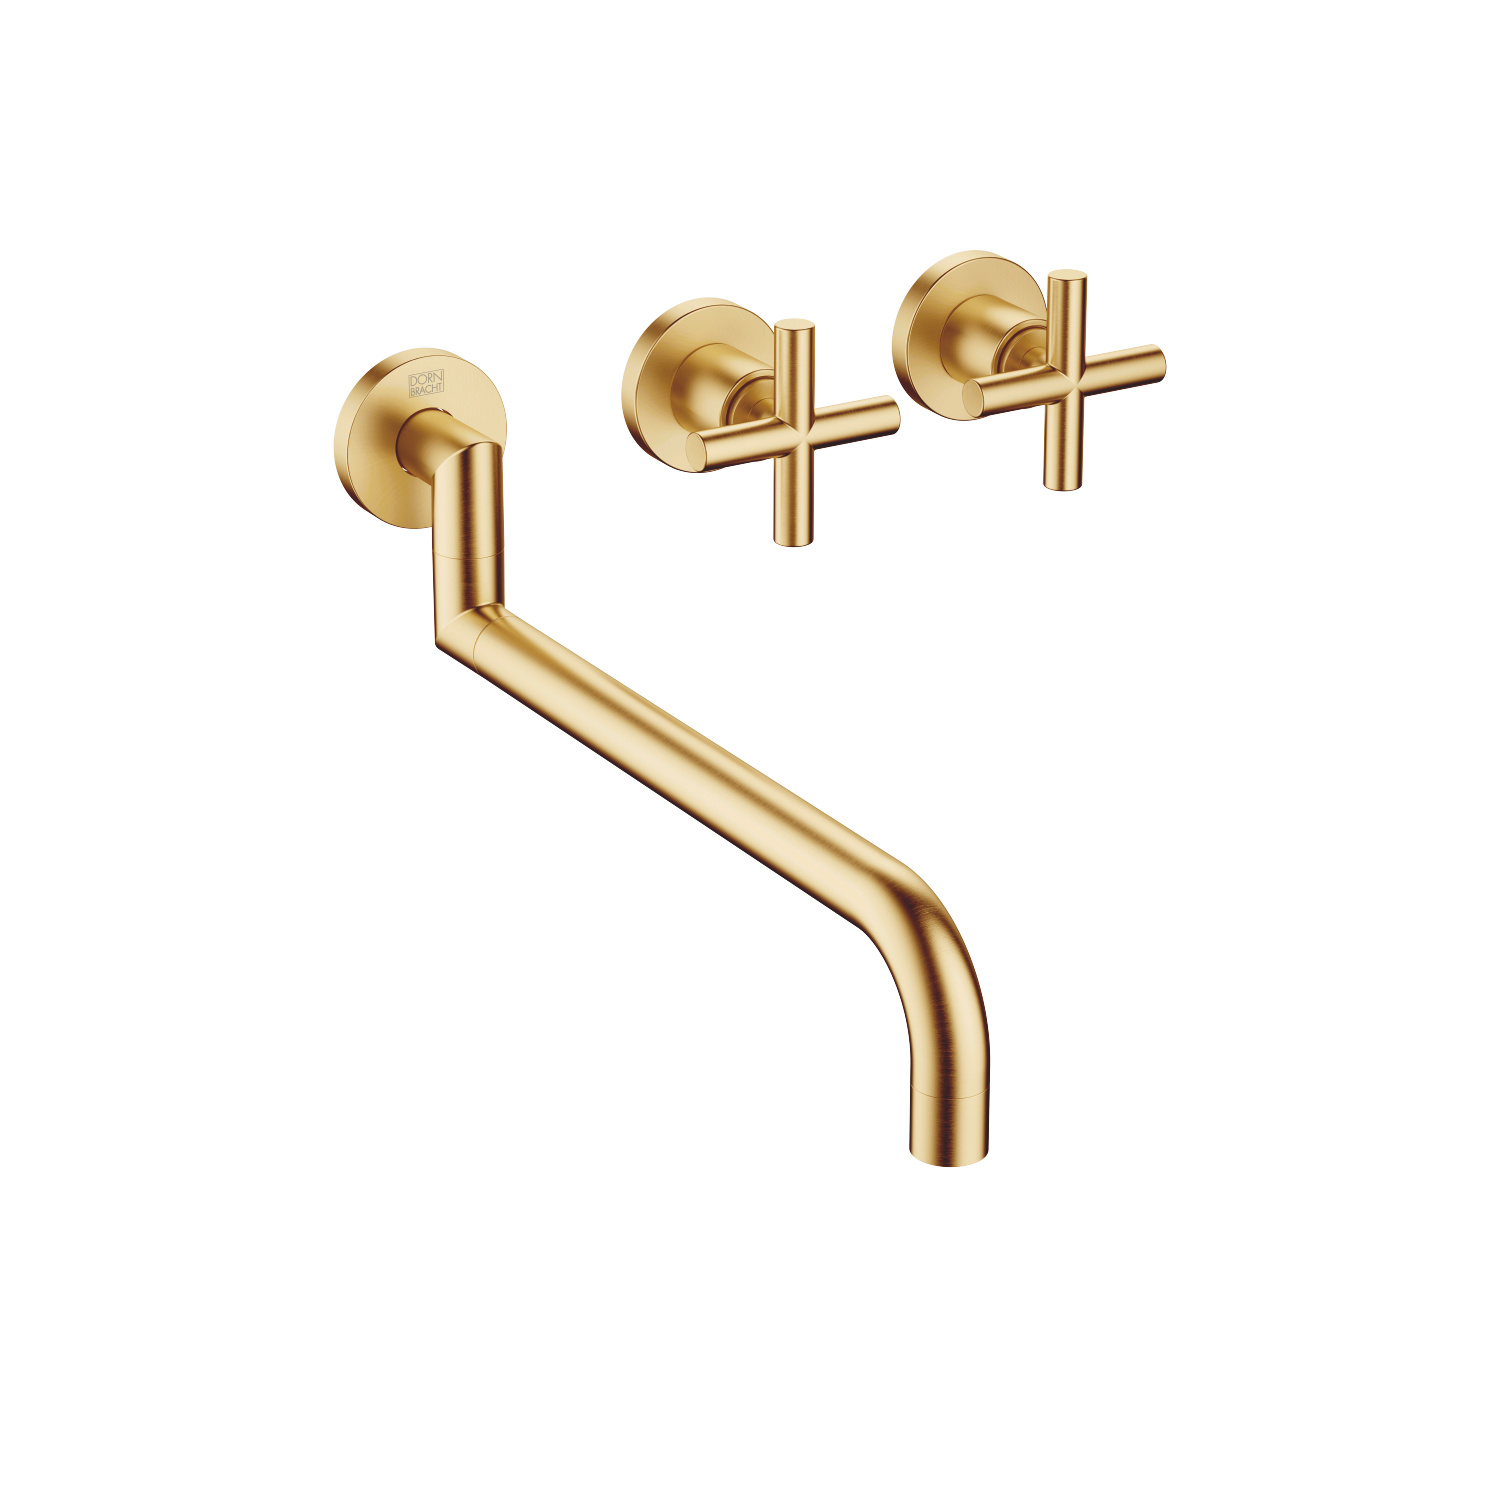 Wall-mounted sink mixer - brushed Durabrass - 36 818 892-28